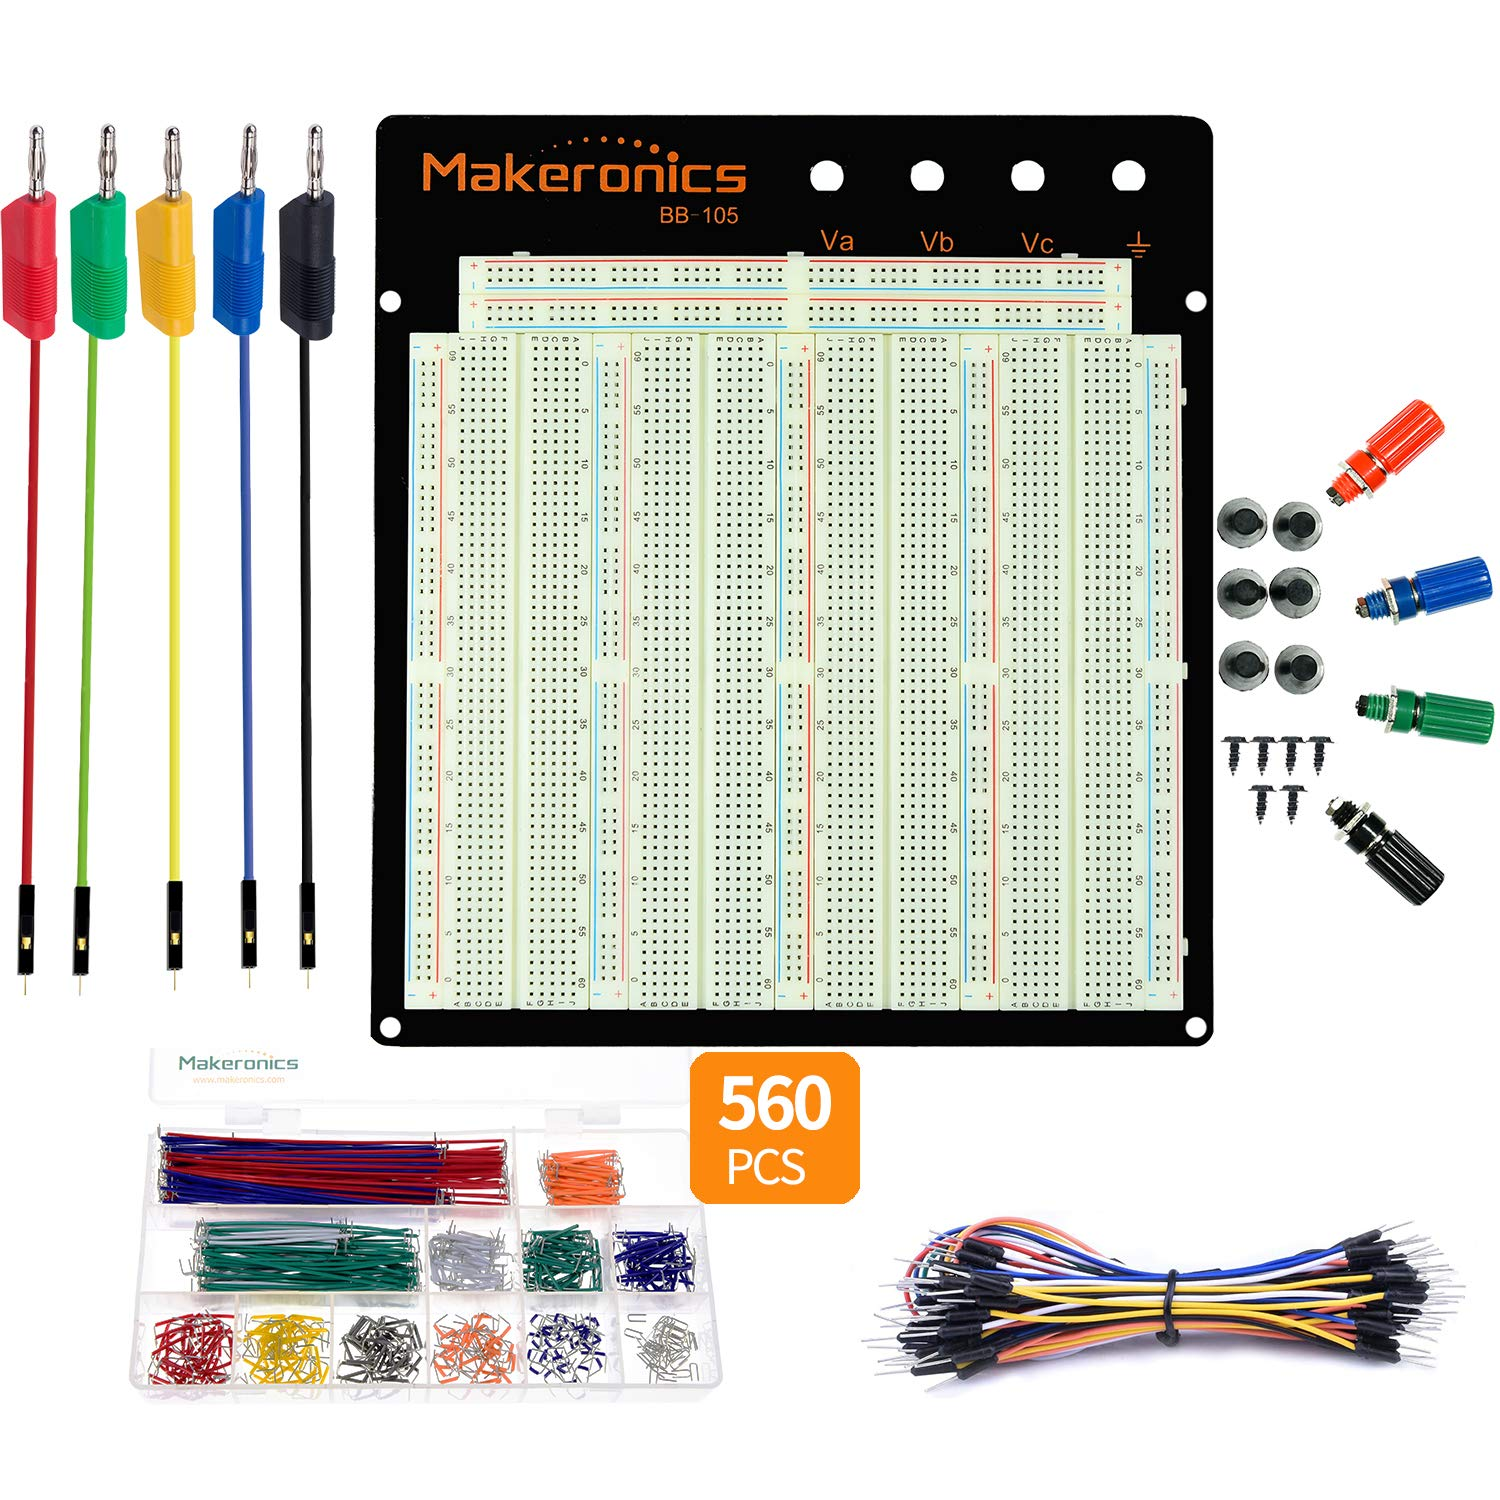 Makeronics Solderless 3220 Breadboard Jumpers Kit| 3220 Tie-Points Experiment Plug-in Breadboard + 5 PCS Banana Plug to Dupont Wires(Male) +560 U-Shape Jumper + 65 PCS 24AWG Pure Copper Jumper Wires